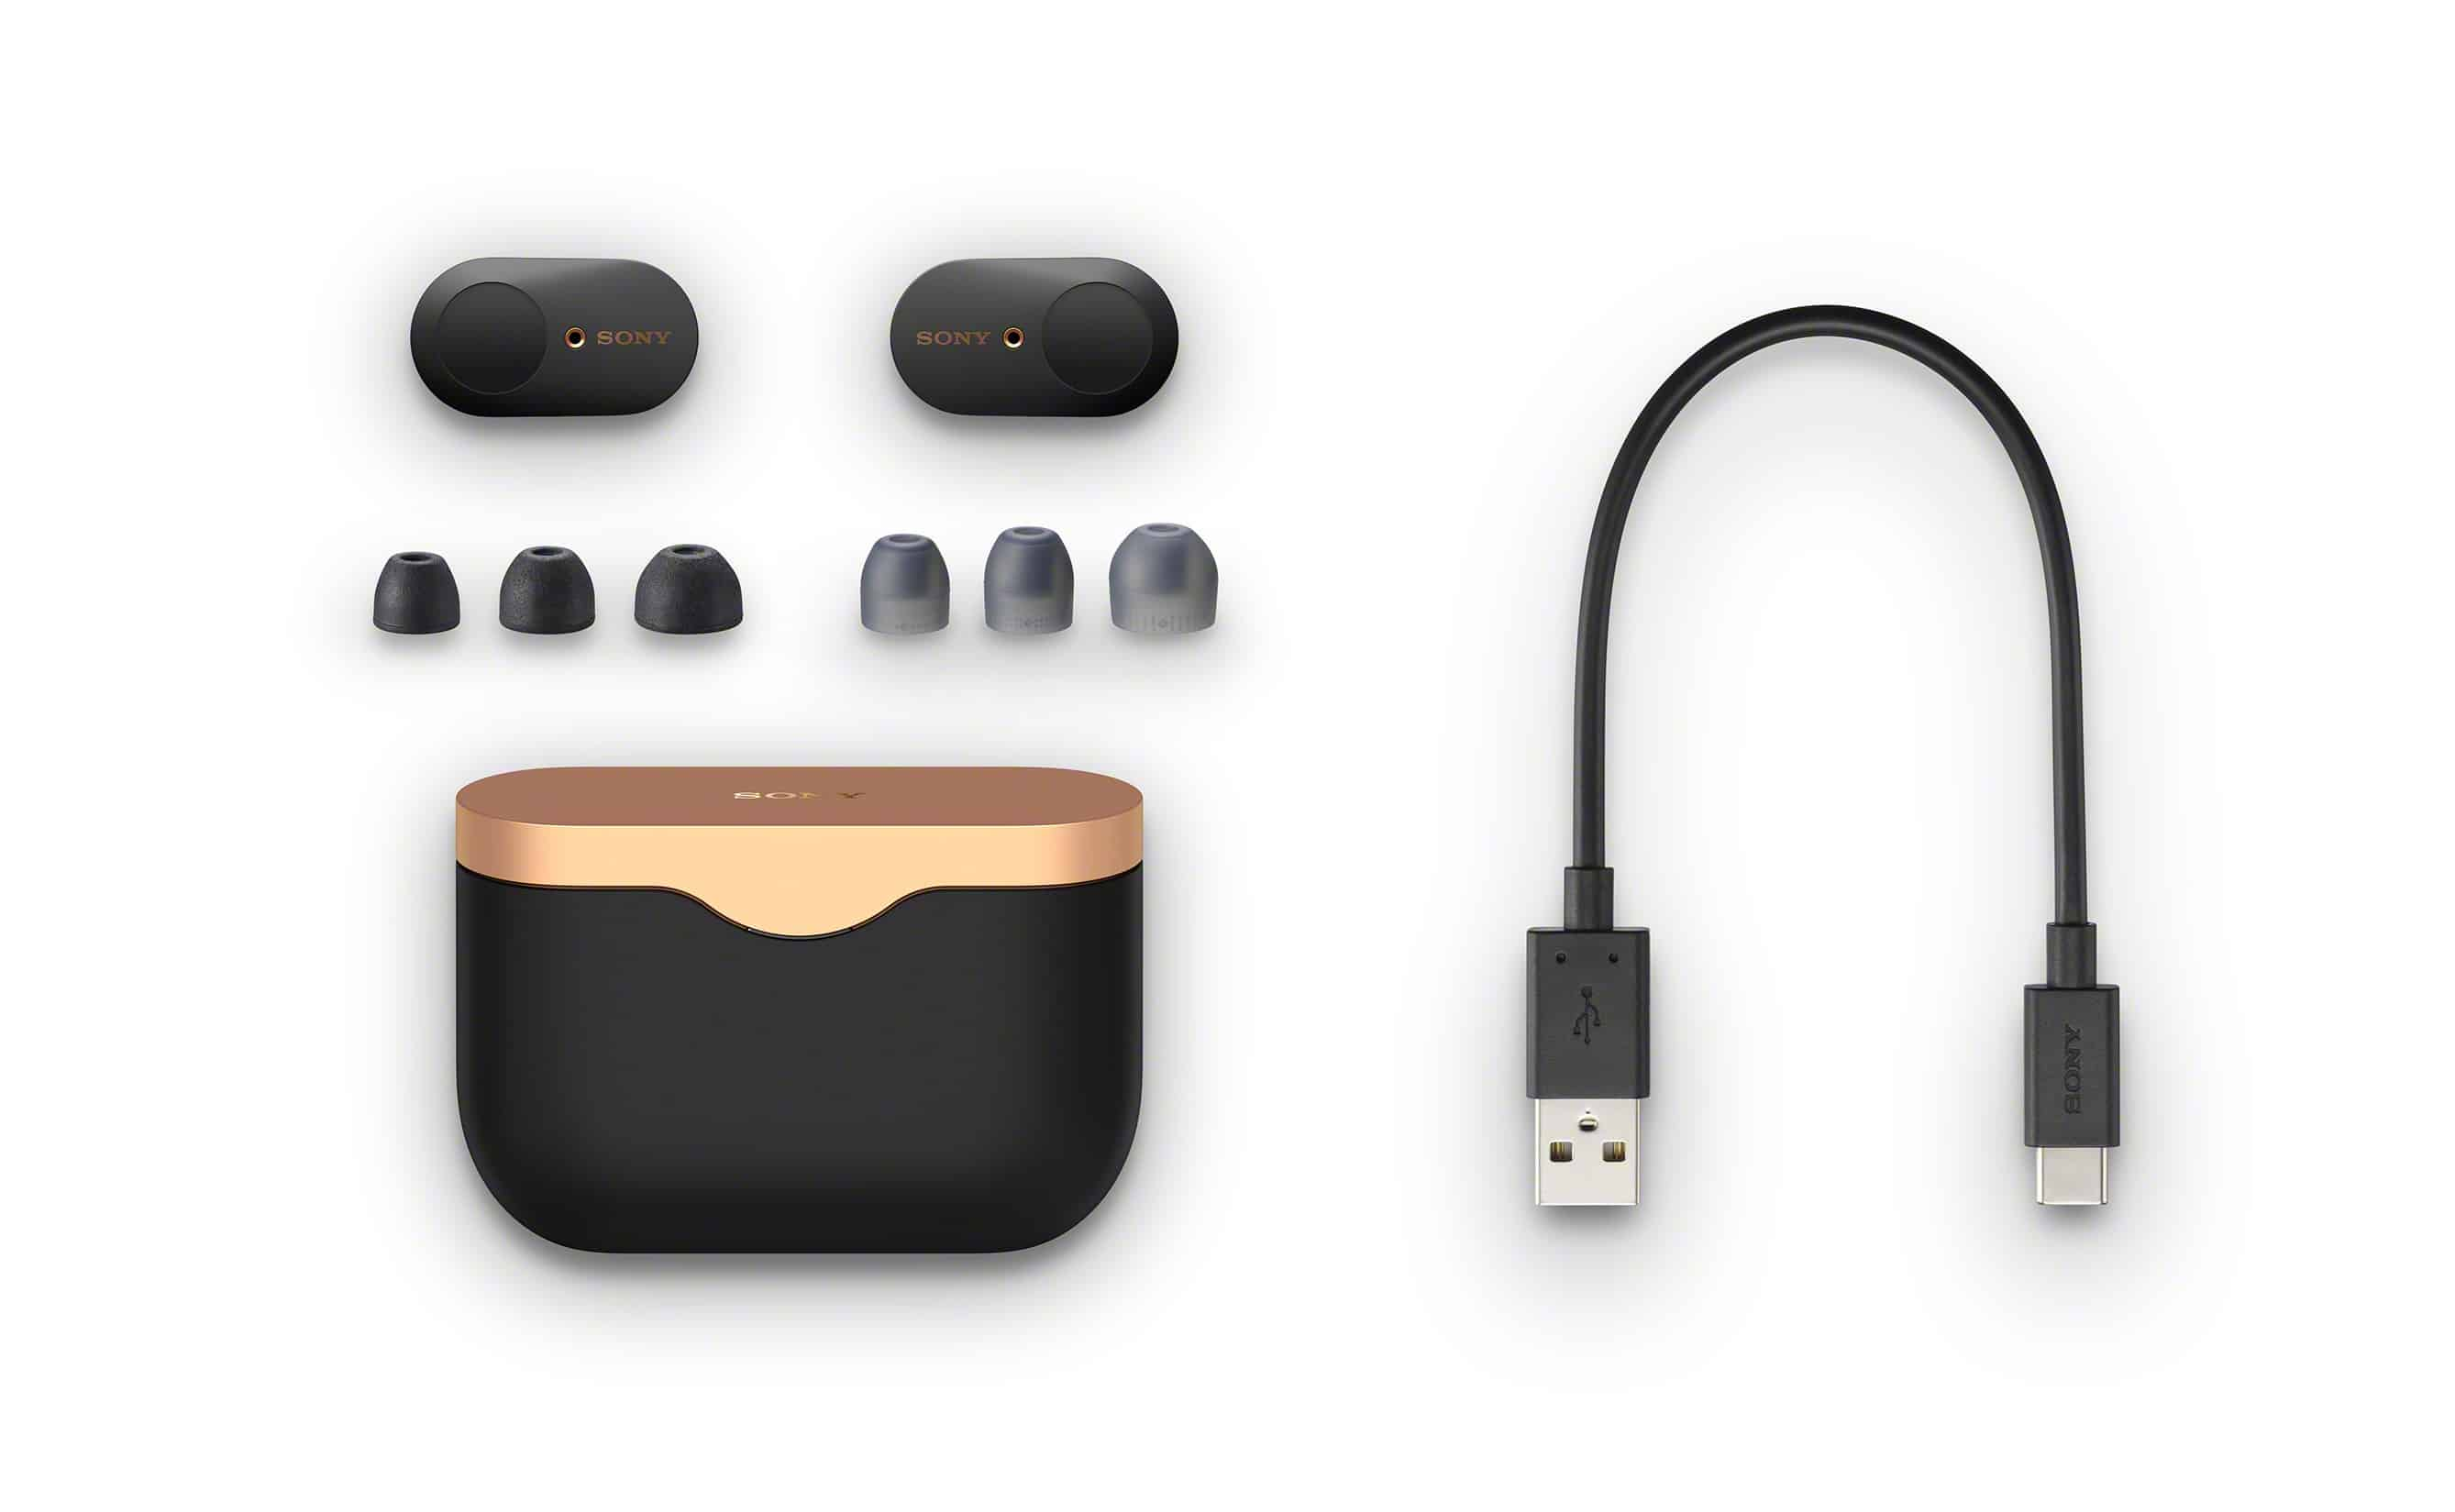 Sony WF-1000XM3 Truly Wireless Earphones With With Active Noise Cancellation Announced